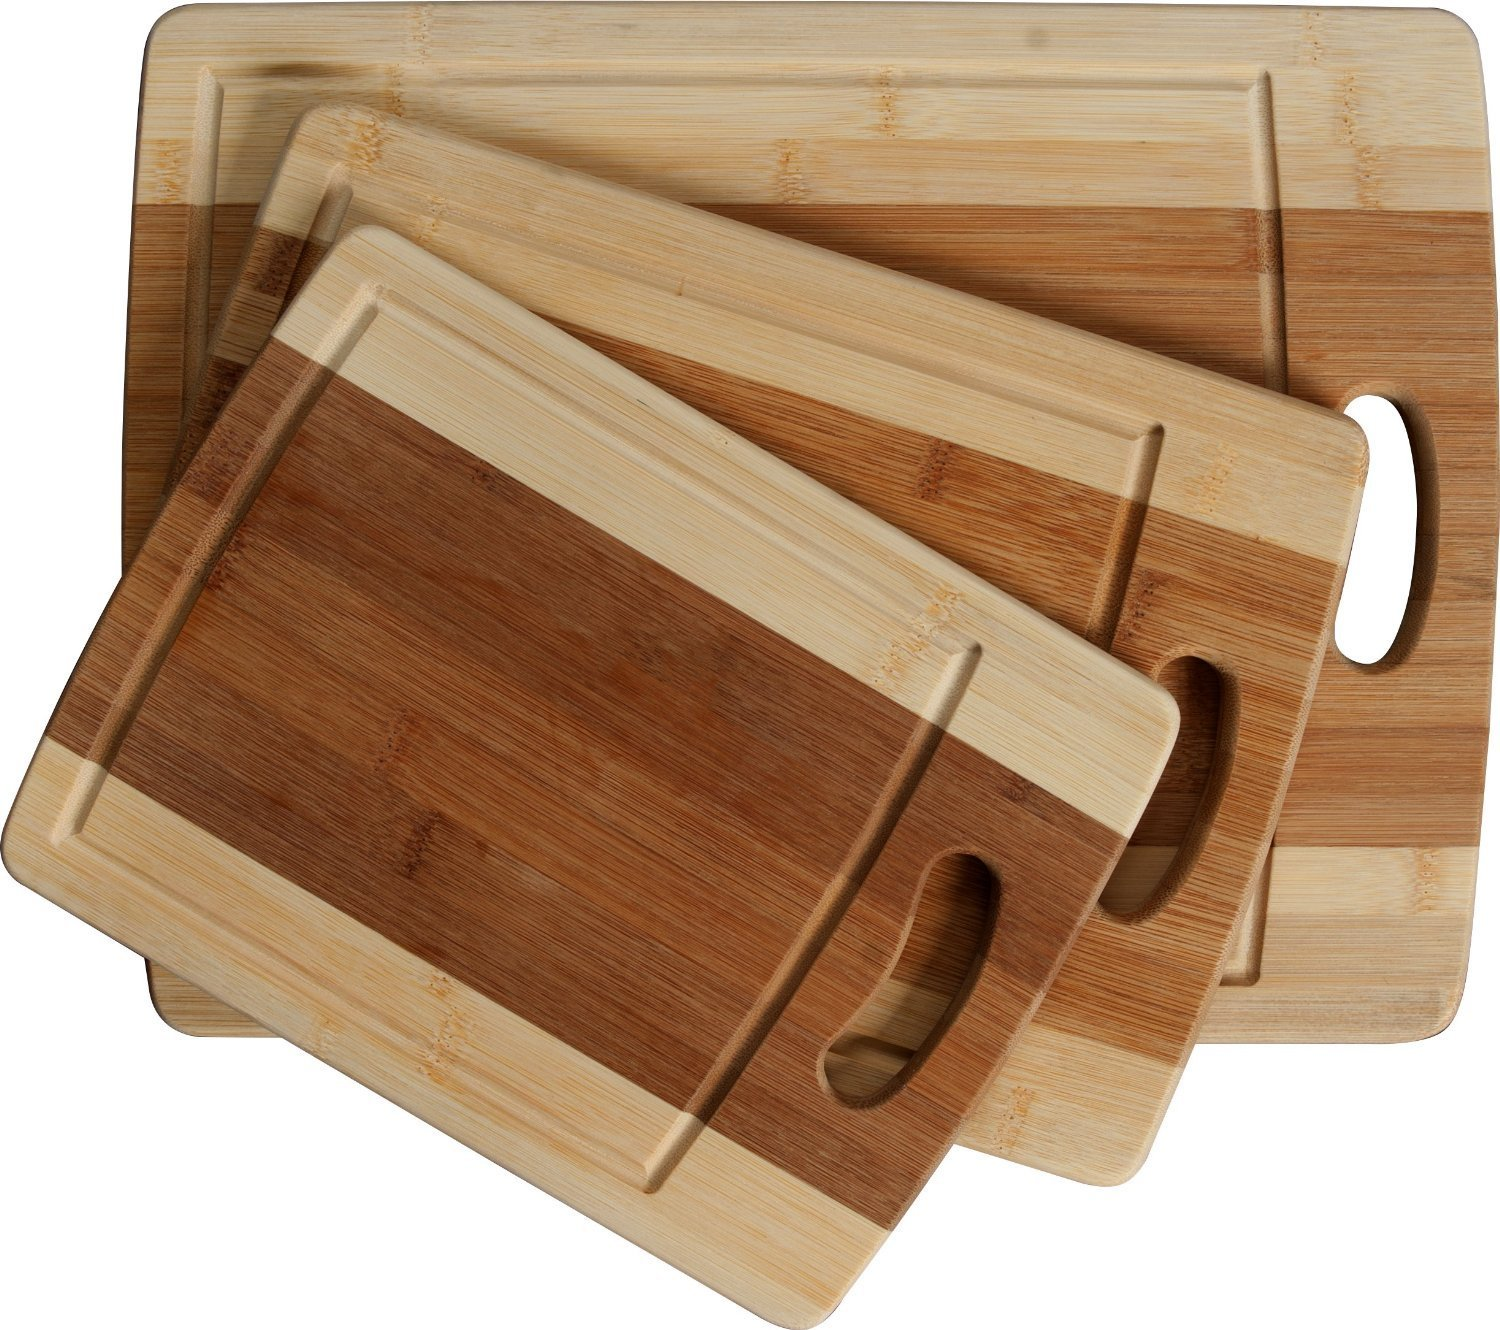 KP Connections 3-Piece Bamboo Cutting Board Set: Organic Wooden boards with juice grooves and handle Kitchen Plus Connections